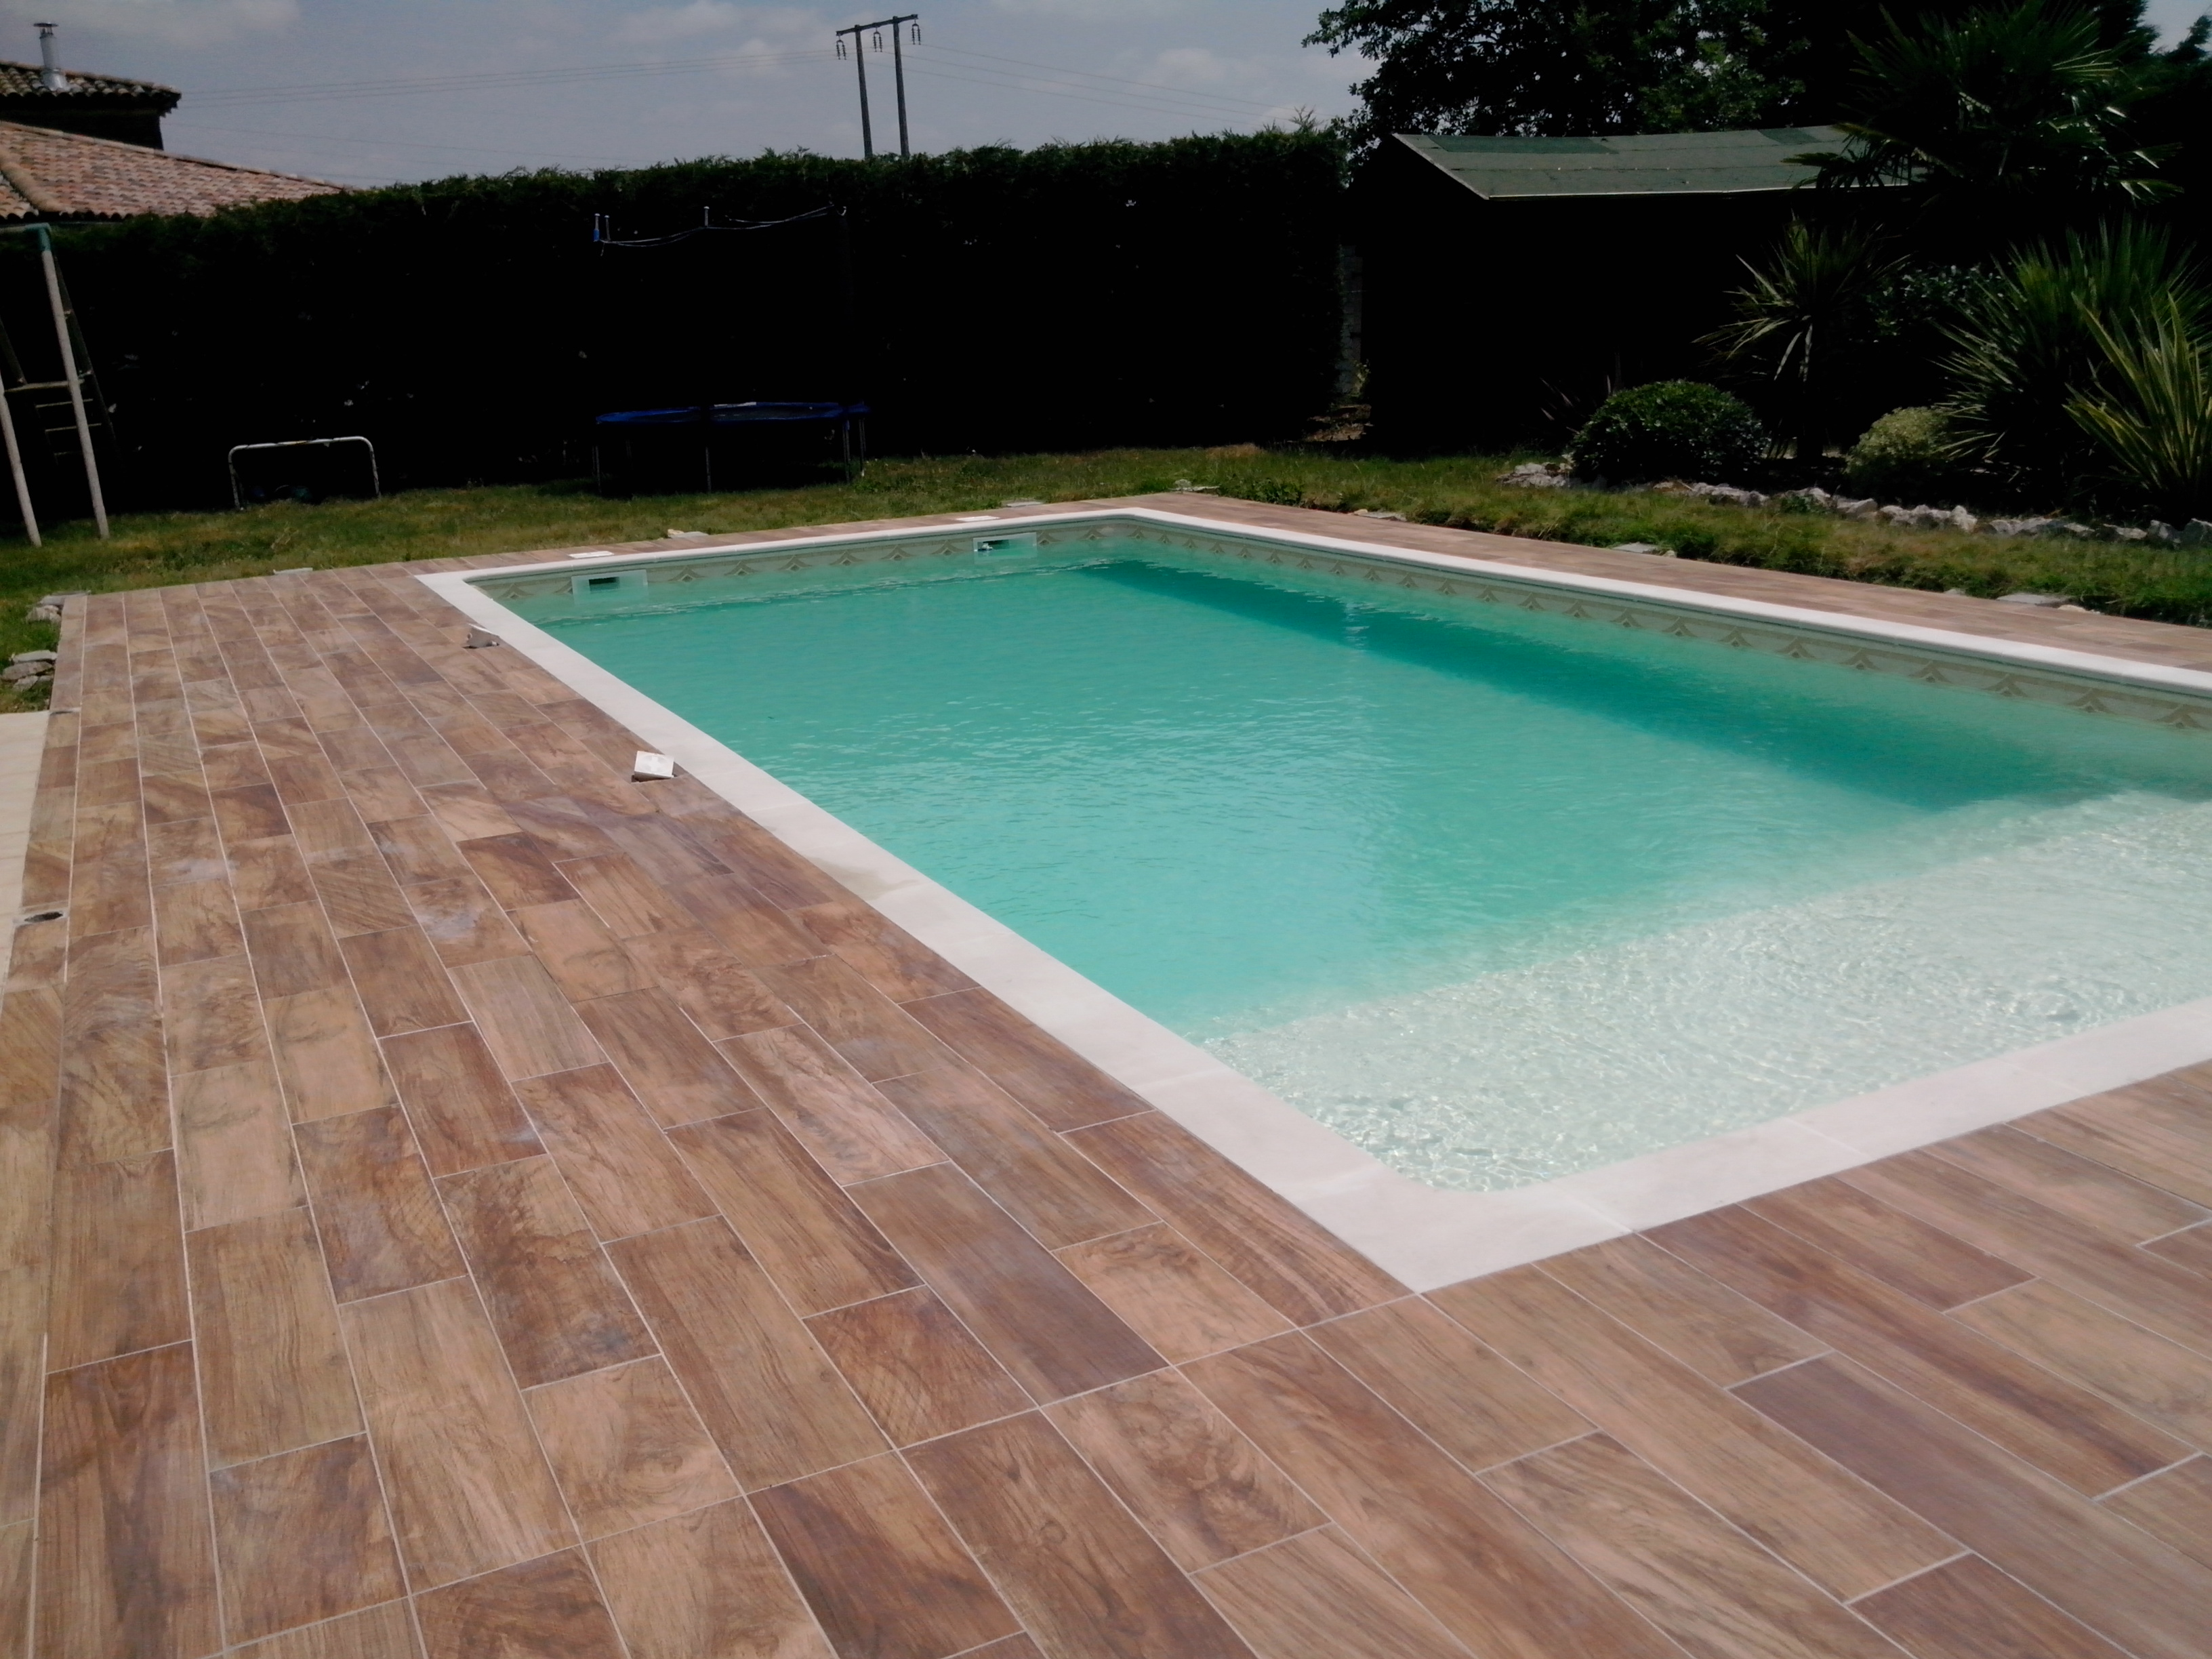 Exemple de construction dune piscine traditionnelle